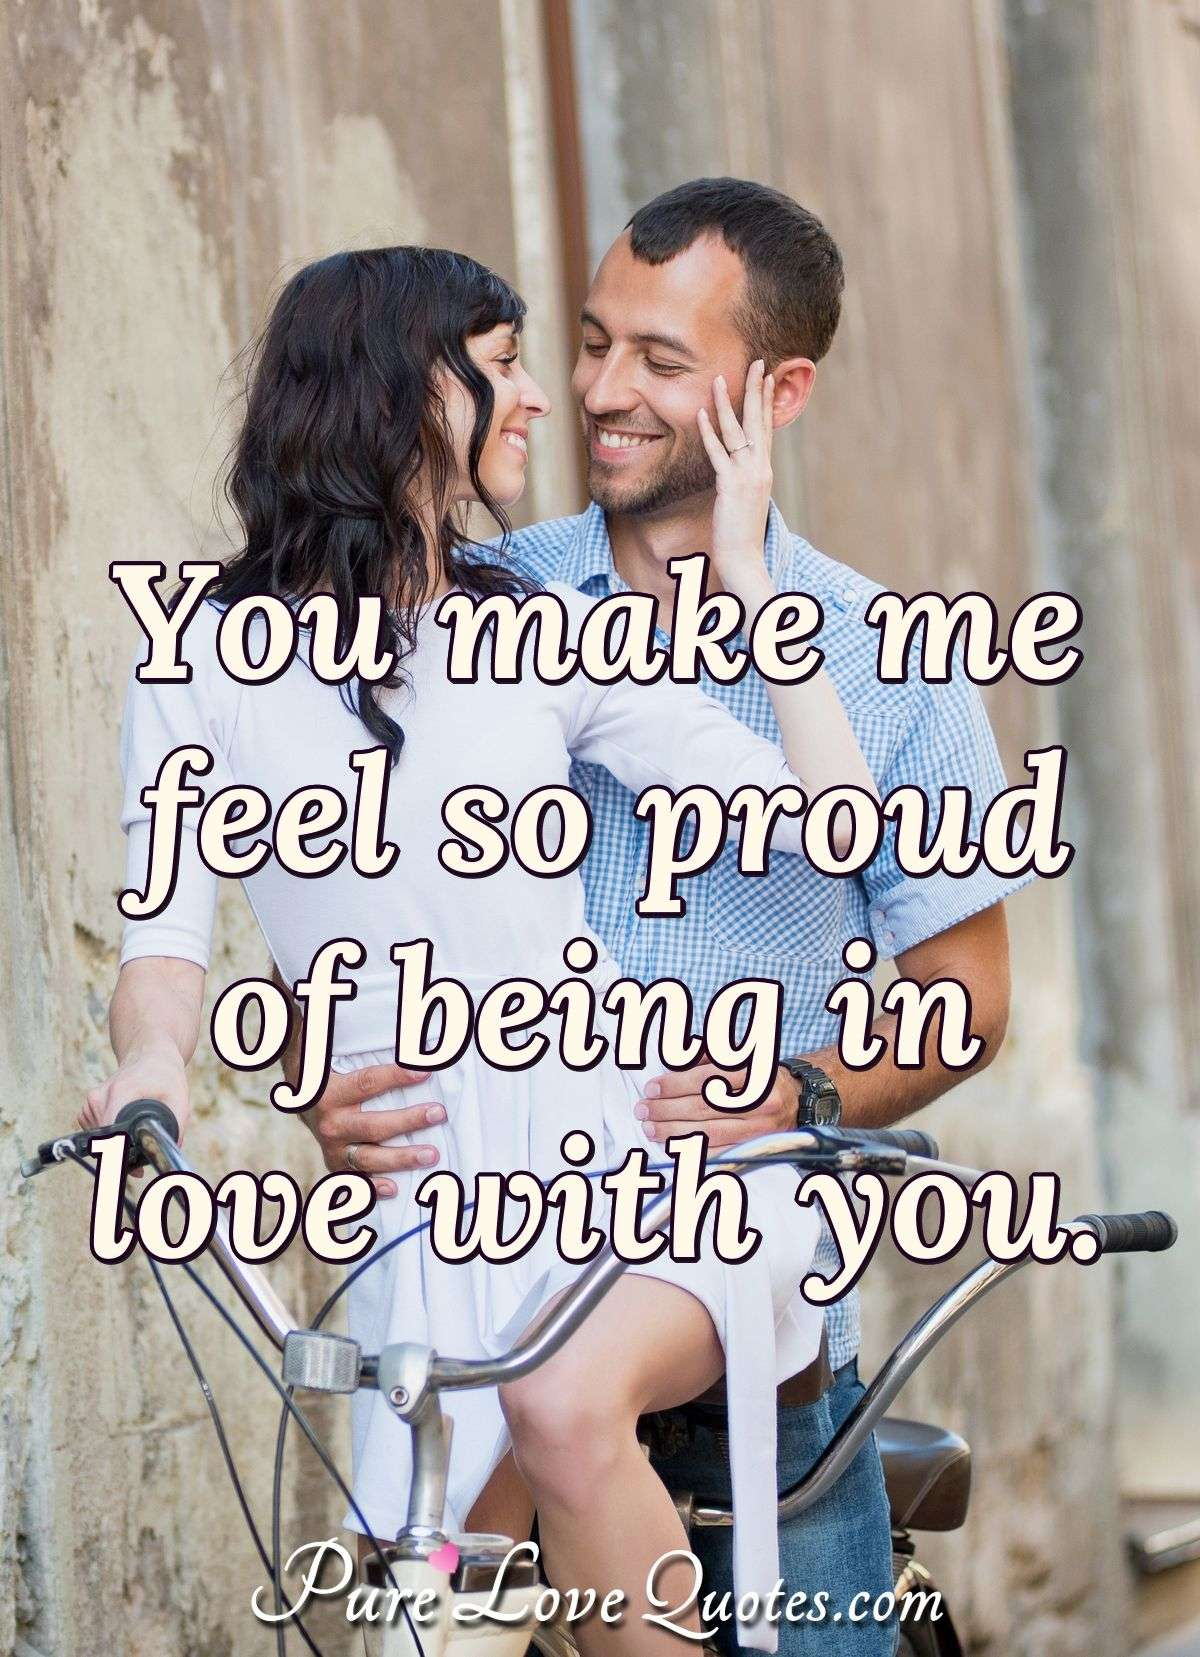 You make me feel so proud of being in love with you. - Anonymous